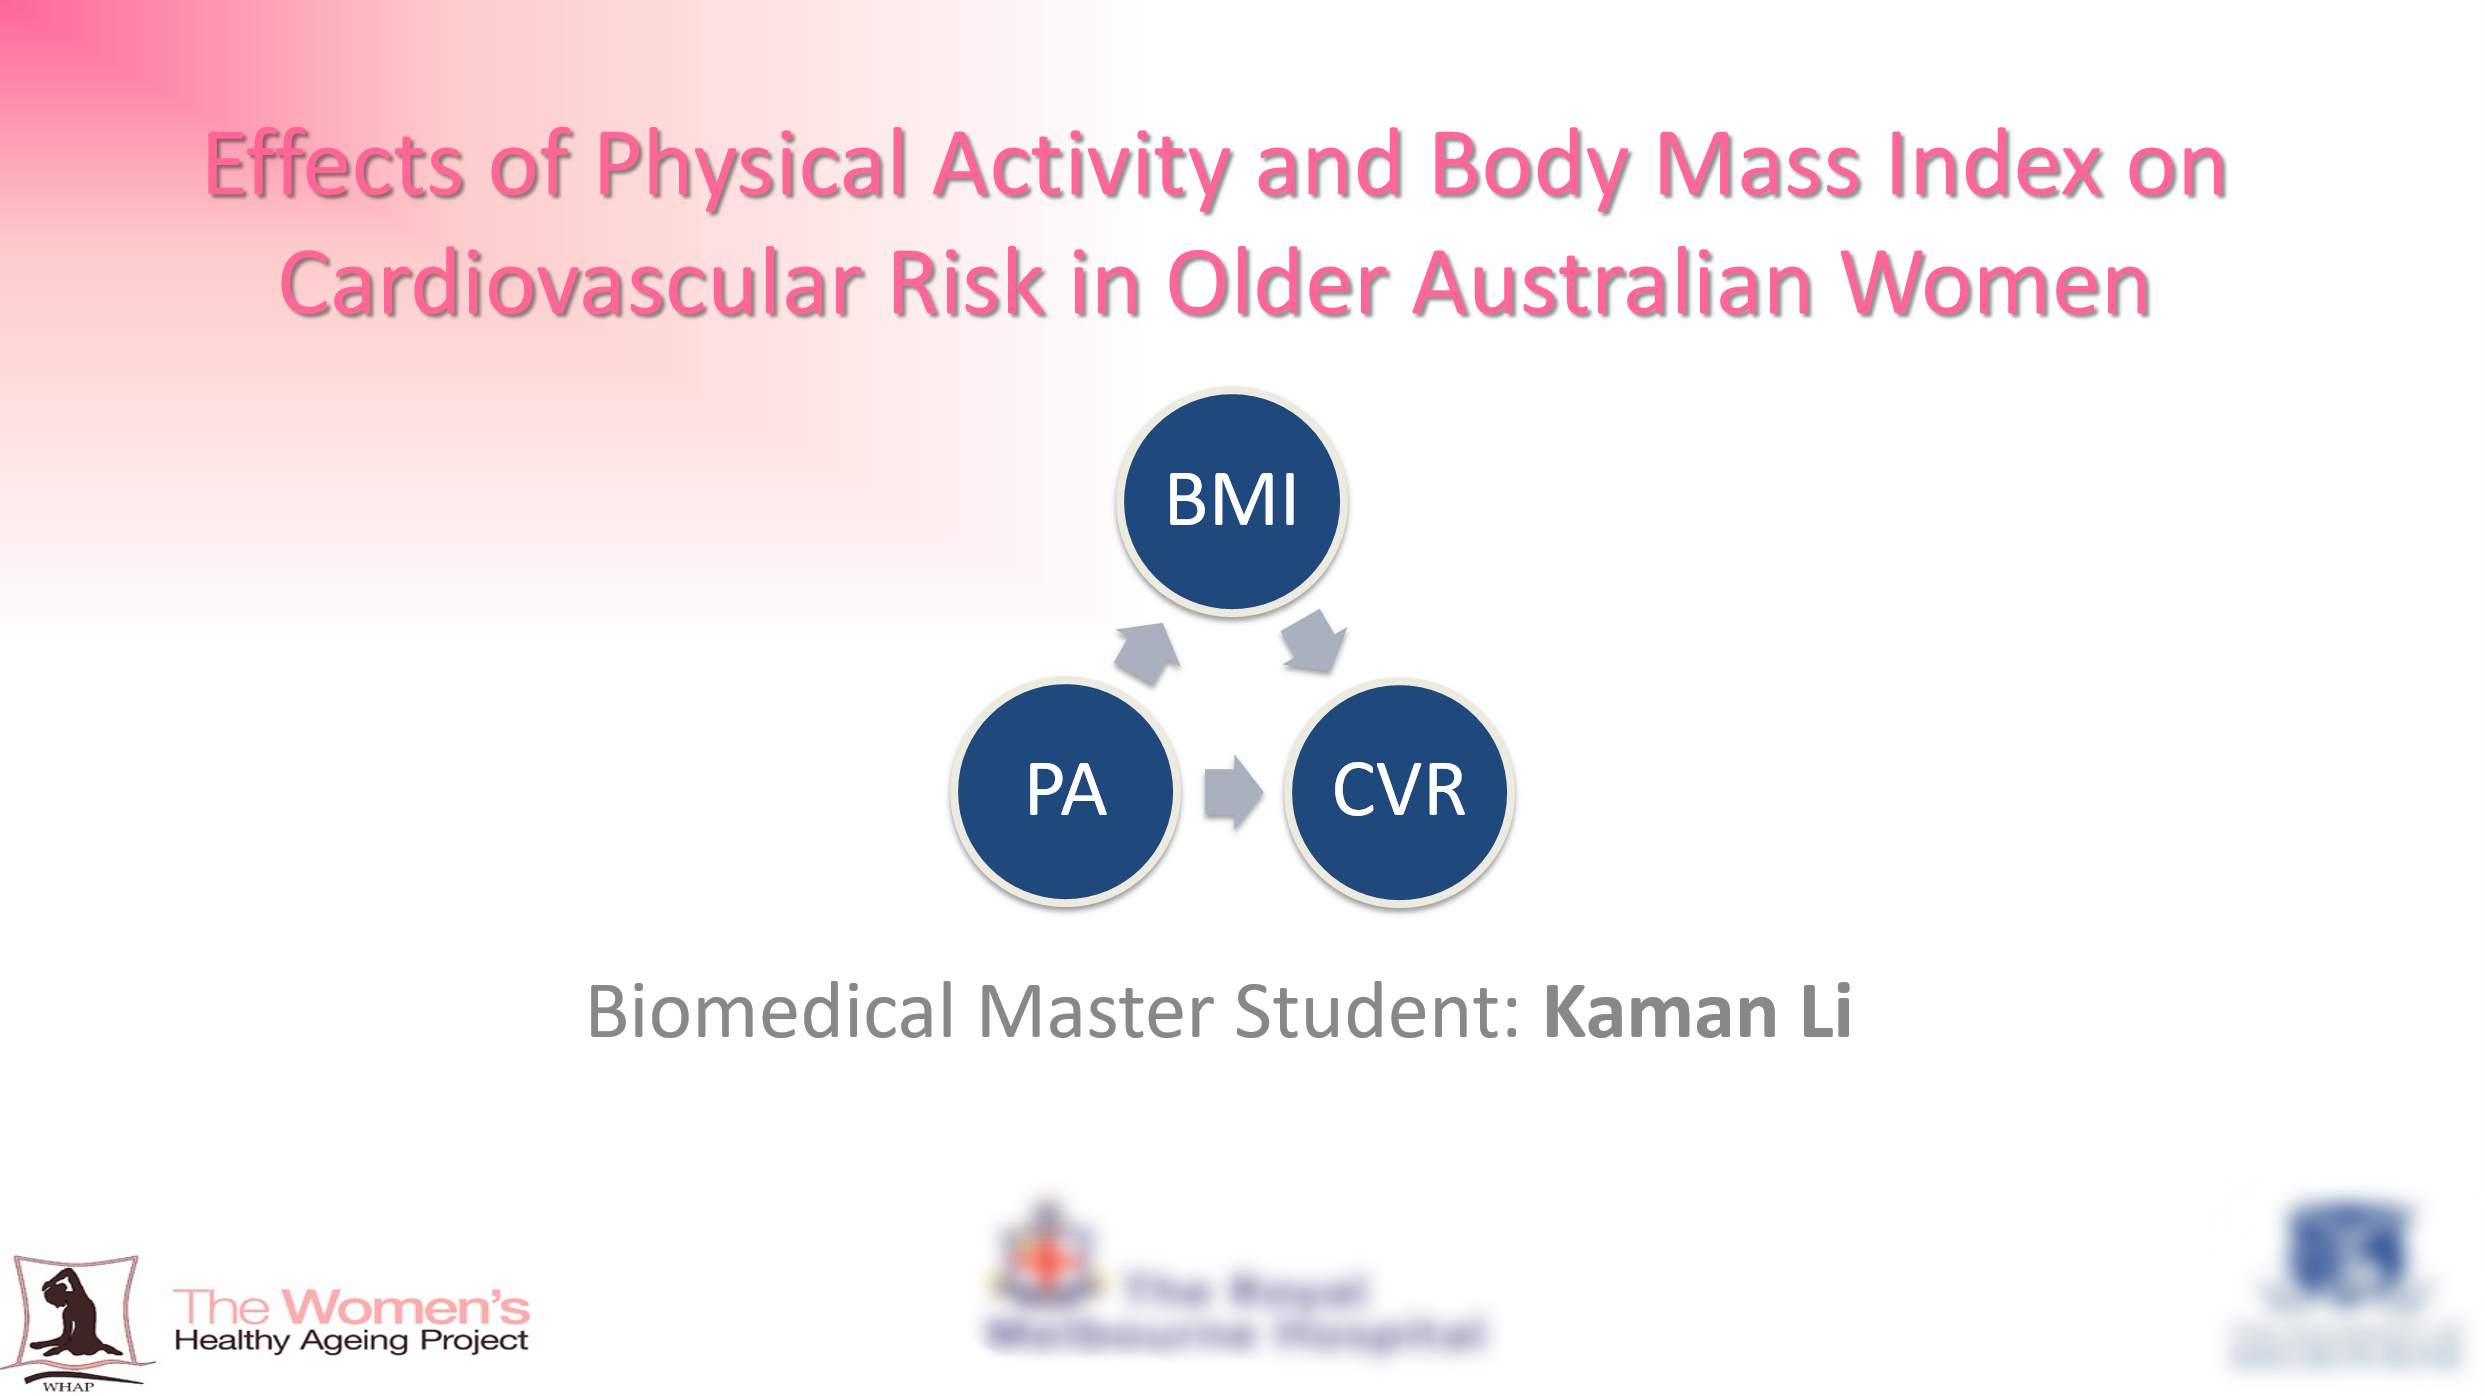 Effects of Physical Activity and Body Mass Index on Cardiovascular Risk in Older Australian Women - Cardiovascular disease (CVD) is the leading cause of death worldwide, with more deaths occurring in women.Early detection of cardiovascular risk (CVR) is essential to cardiovascular research. This research found that the odds of developing high CVR were doubled in overweight women and almost three times greater in obese women compared to women with a healthy BMI. Physical activity also had an effect on CVR, though this was less marked.Citation: Li, K., et al. (2017).Effects of Physical Activity and Body Mass Index on Cardiovascular Risk in Older Australian Women. Paper presented at the 15th World Congress on Public Health, Melbourne, Australia, 3-7 April.